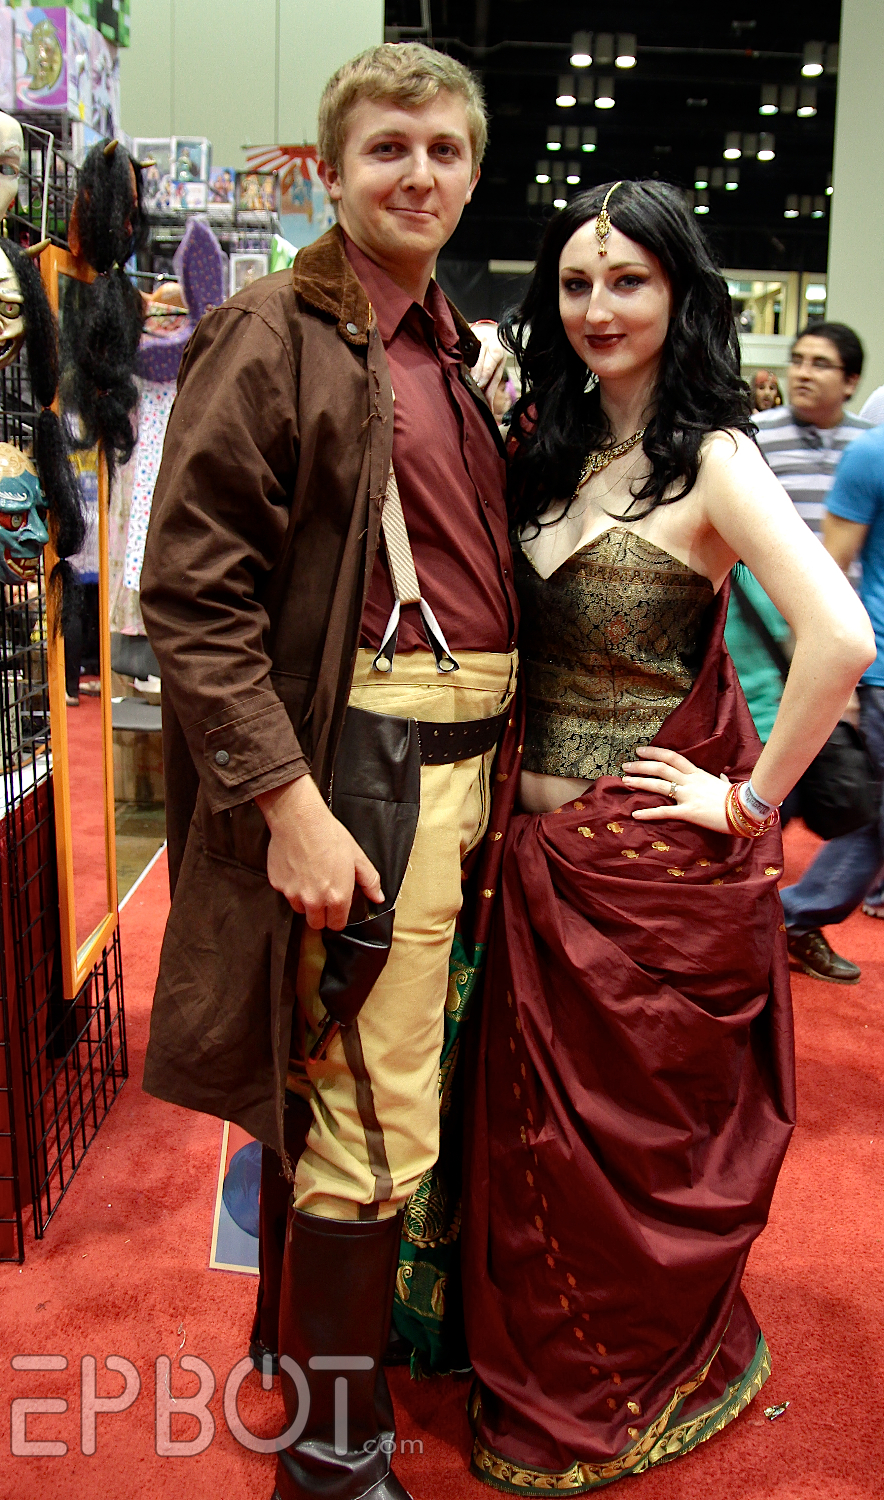 sc 1 st  Epbot & EPBOT: MegaCon 2013 - Final Day Favs!